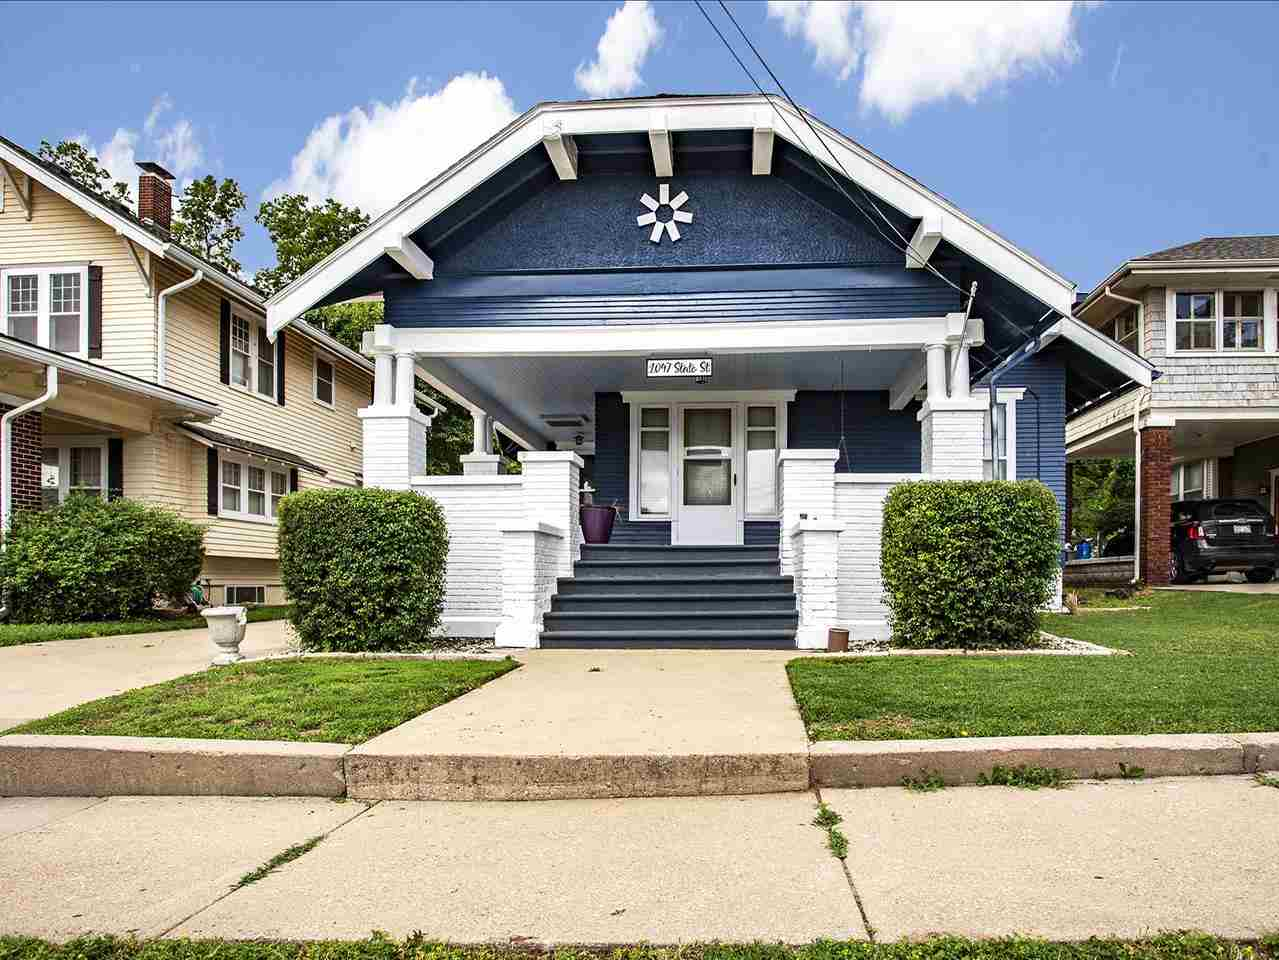 HERE IS YOUR CHANCE TO OWN A HUNDRED-YEAR OLD HOME WITH TONS OF CHARM AND CHARACTER!!  THE OUTSIDE W